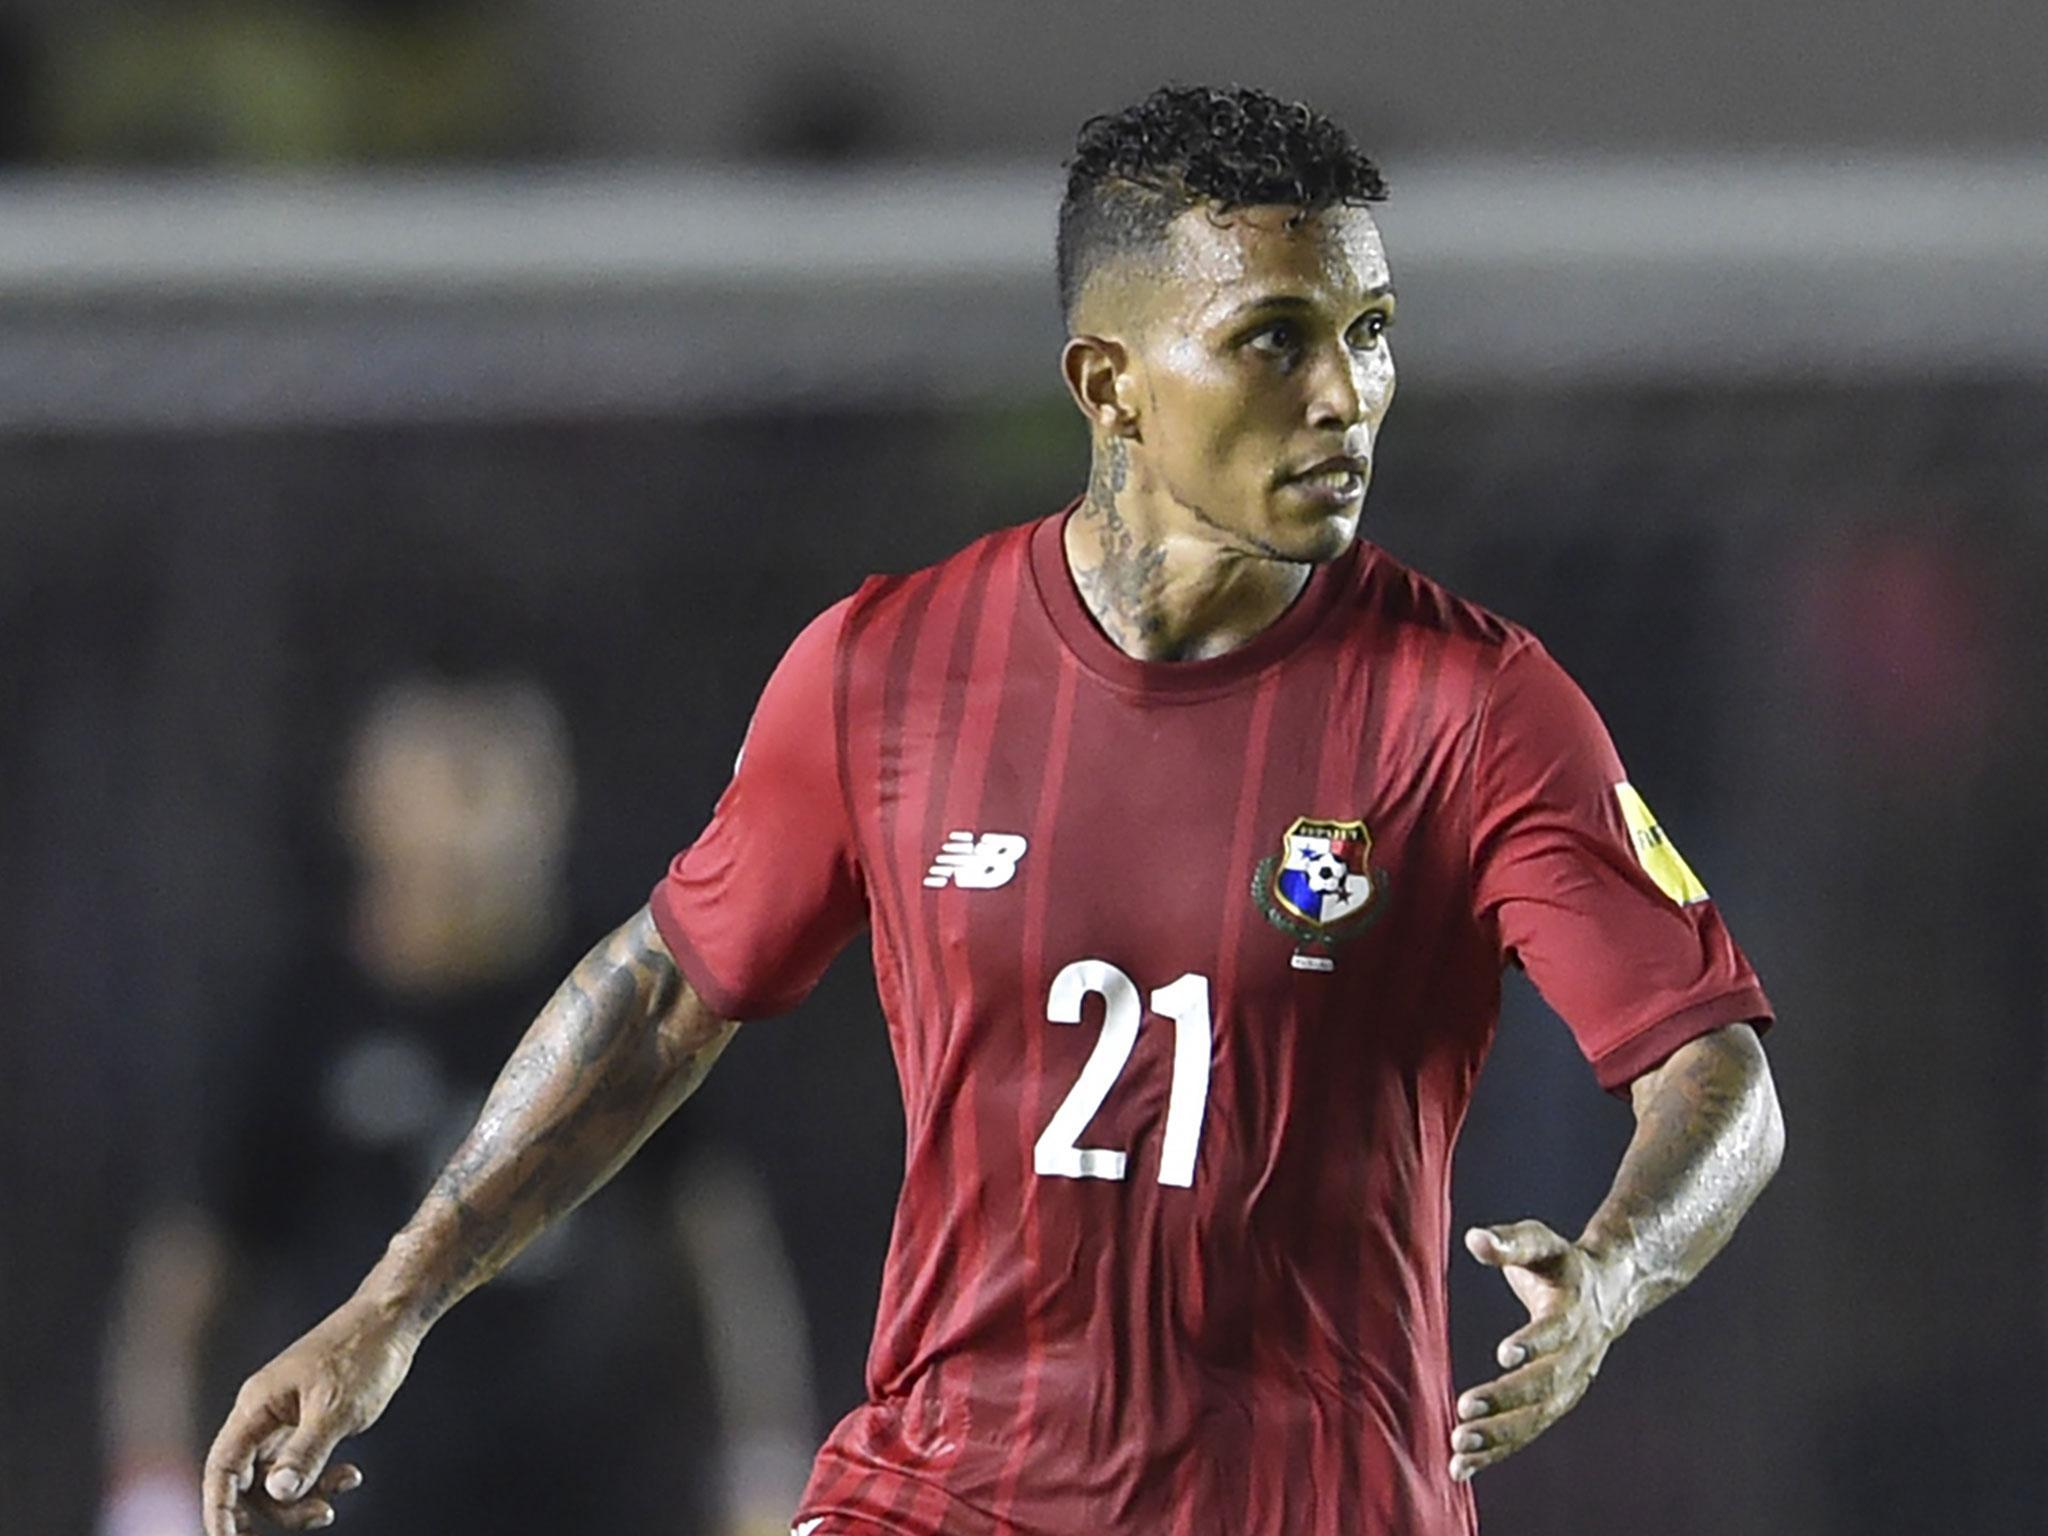 Panama international Amilcar Henriquez shot and killed outside his home